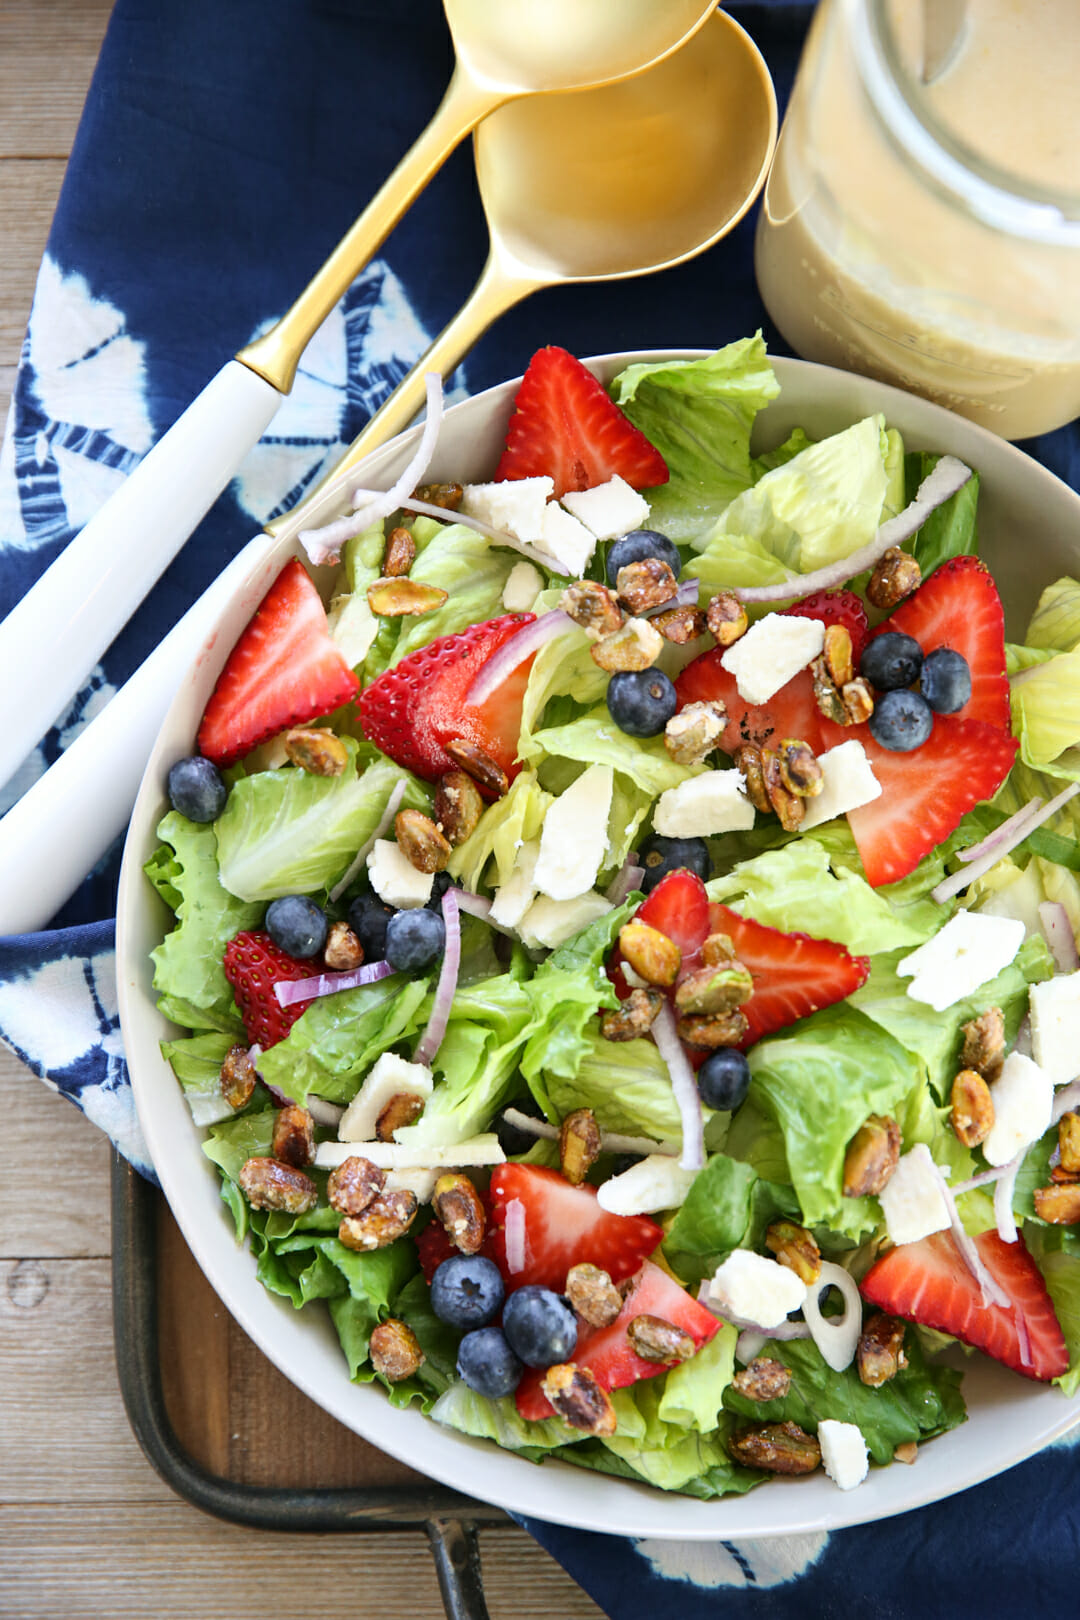 Honey Lemon Vinaigrette on Salad